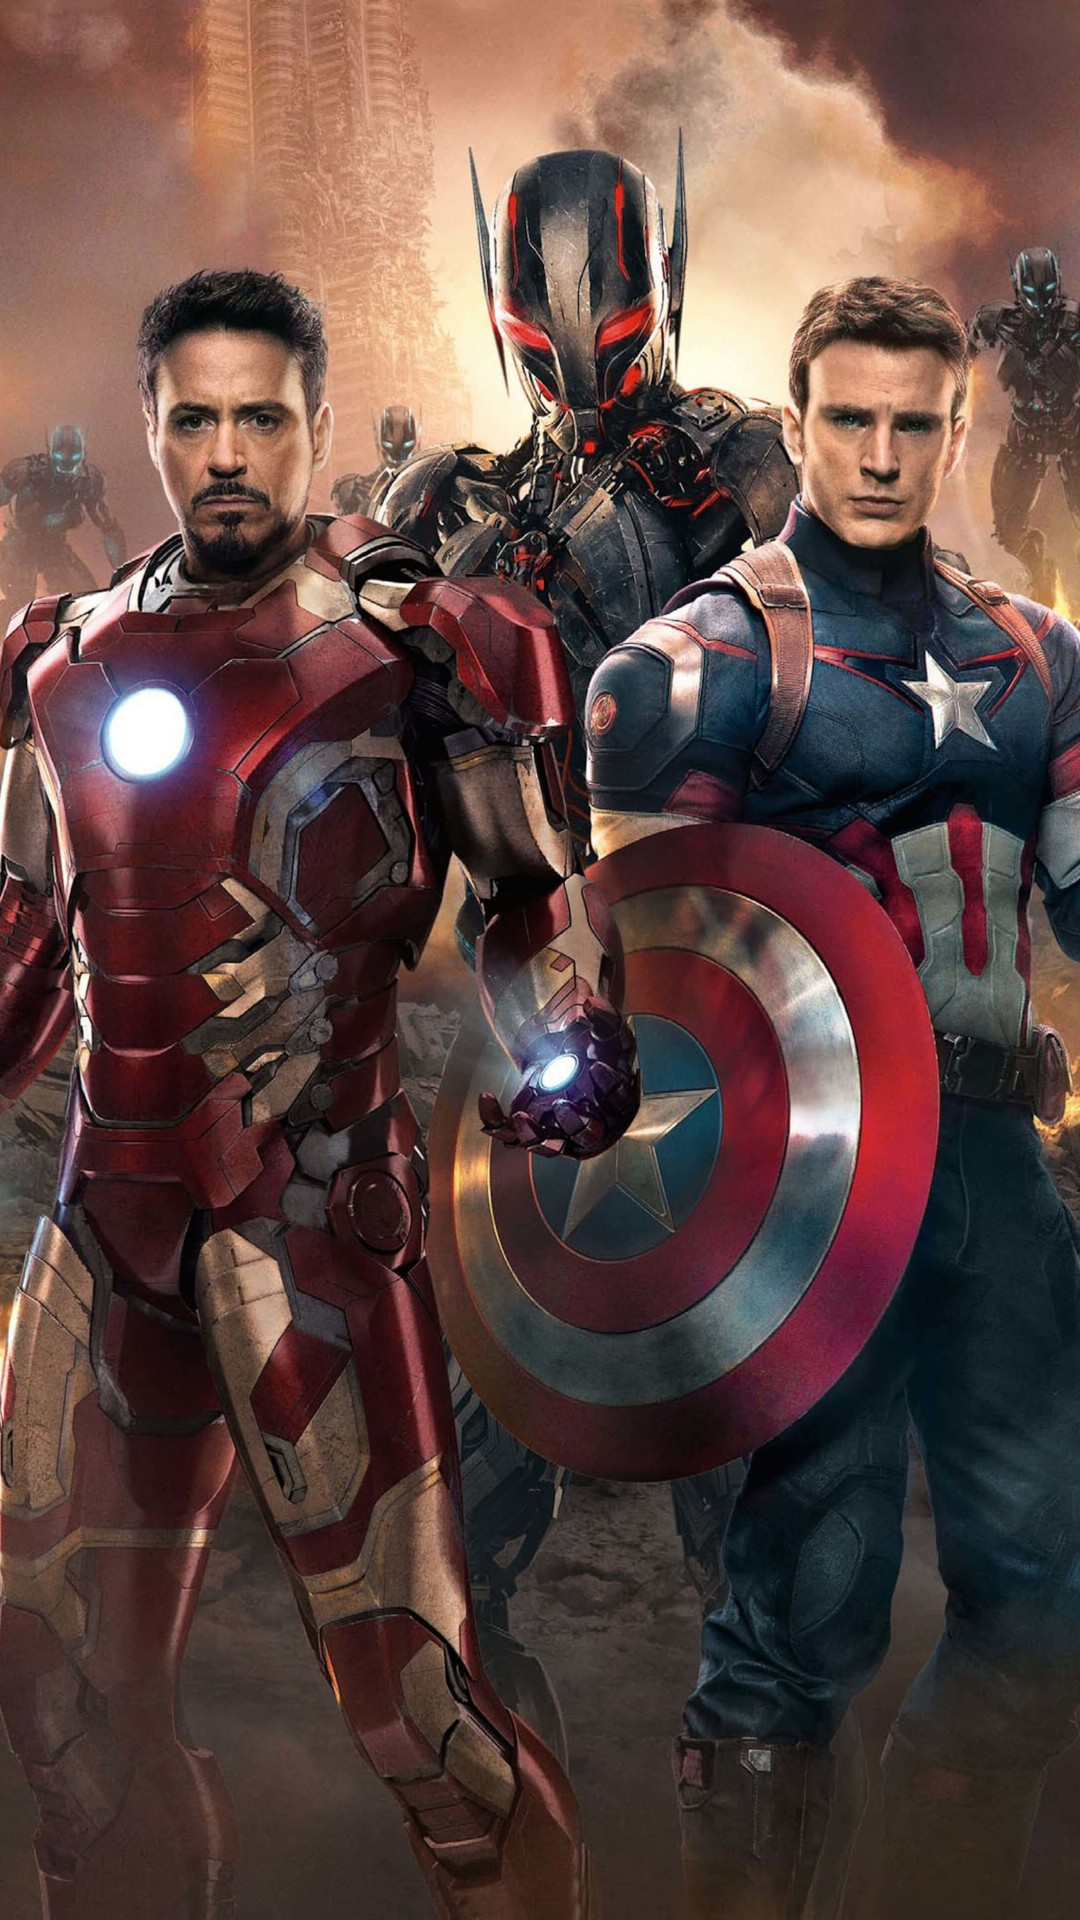 The Avengers: Age of Ultron - Iron Man and Captain America Wallpaper for SONY Xperia Z3